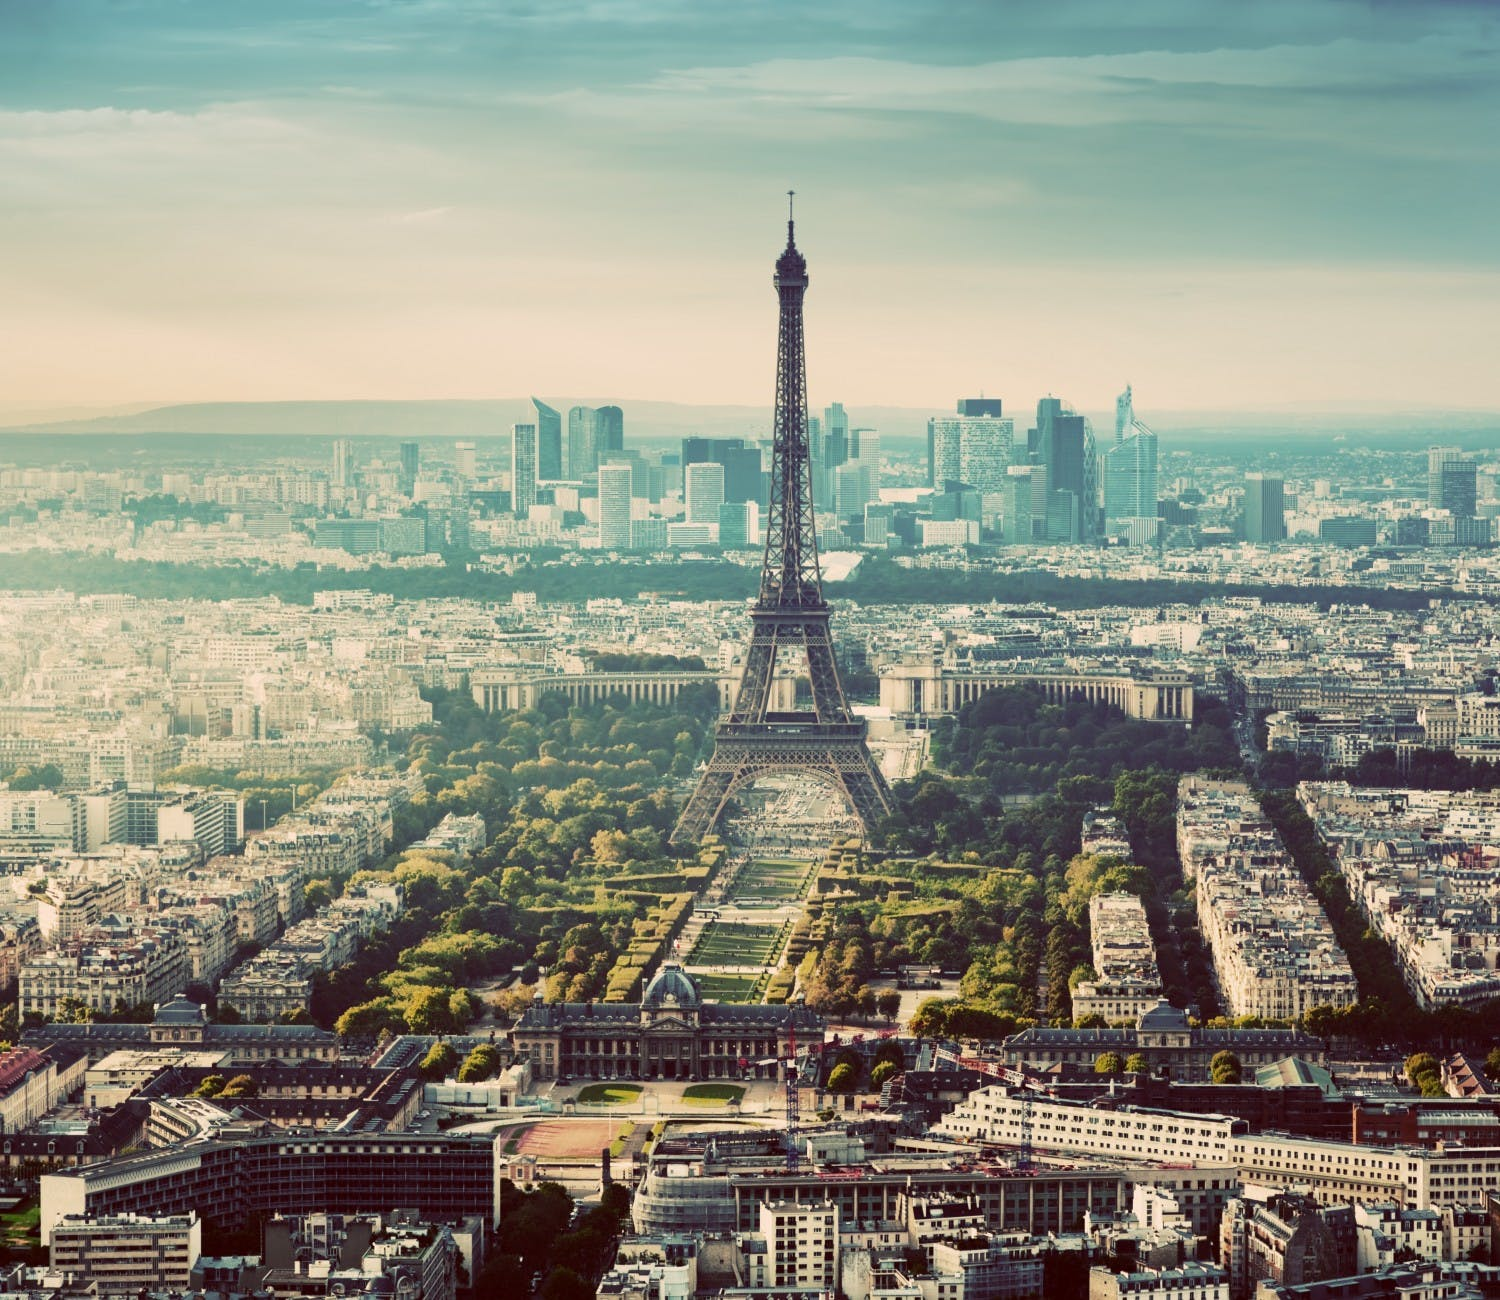 Paris Main Attractions In One Day: Visit The Best Attractions Of Paris In A Day